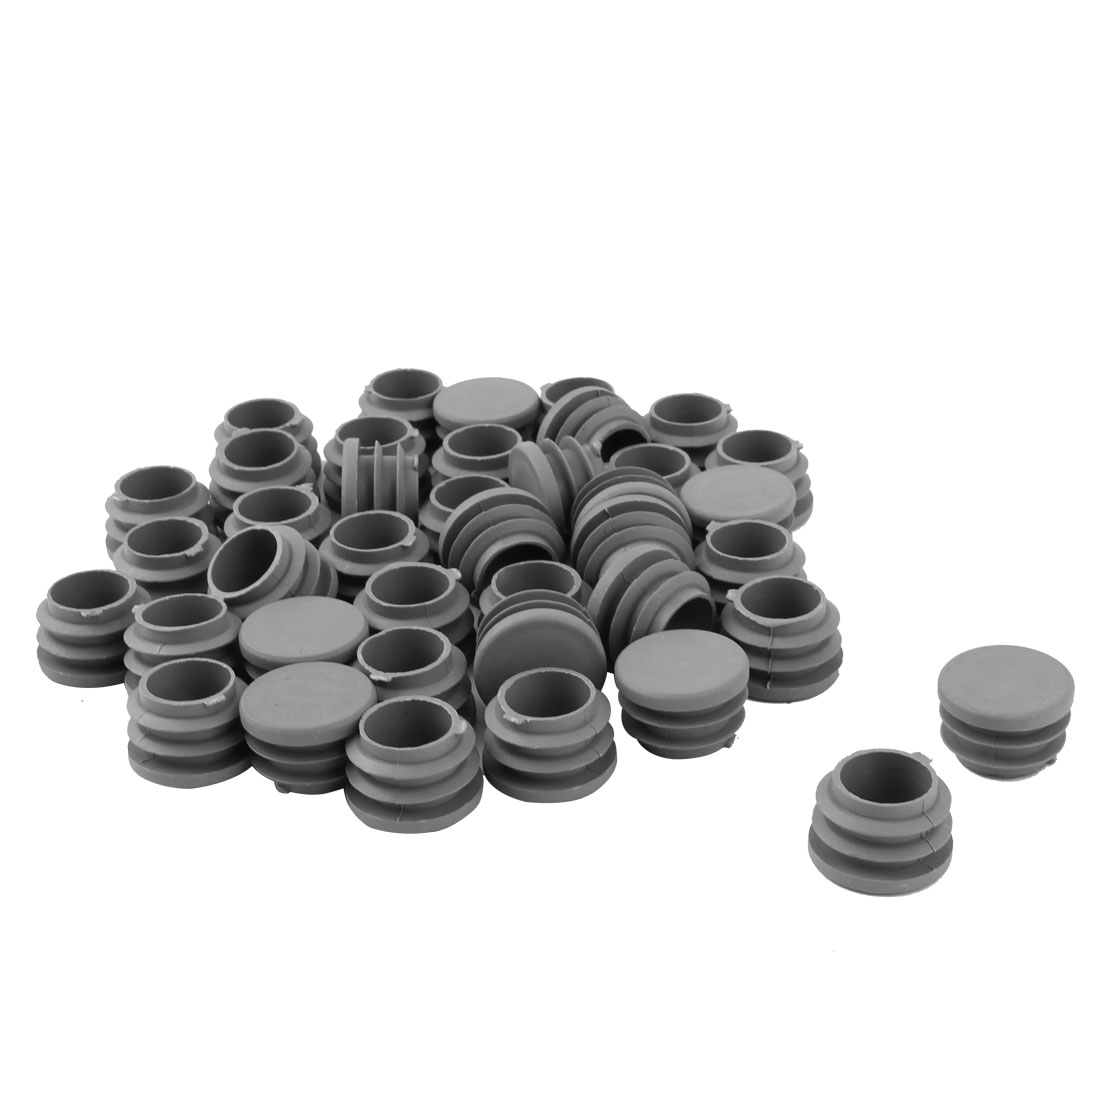 Furniture Table Chair Plastic Round Tube Pipe Insert Cap Cover Protector Gray 25mm Dia 40pcs